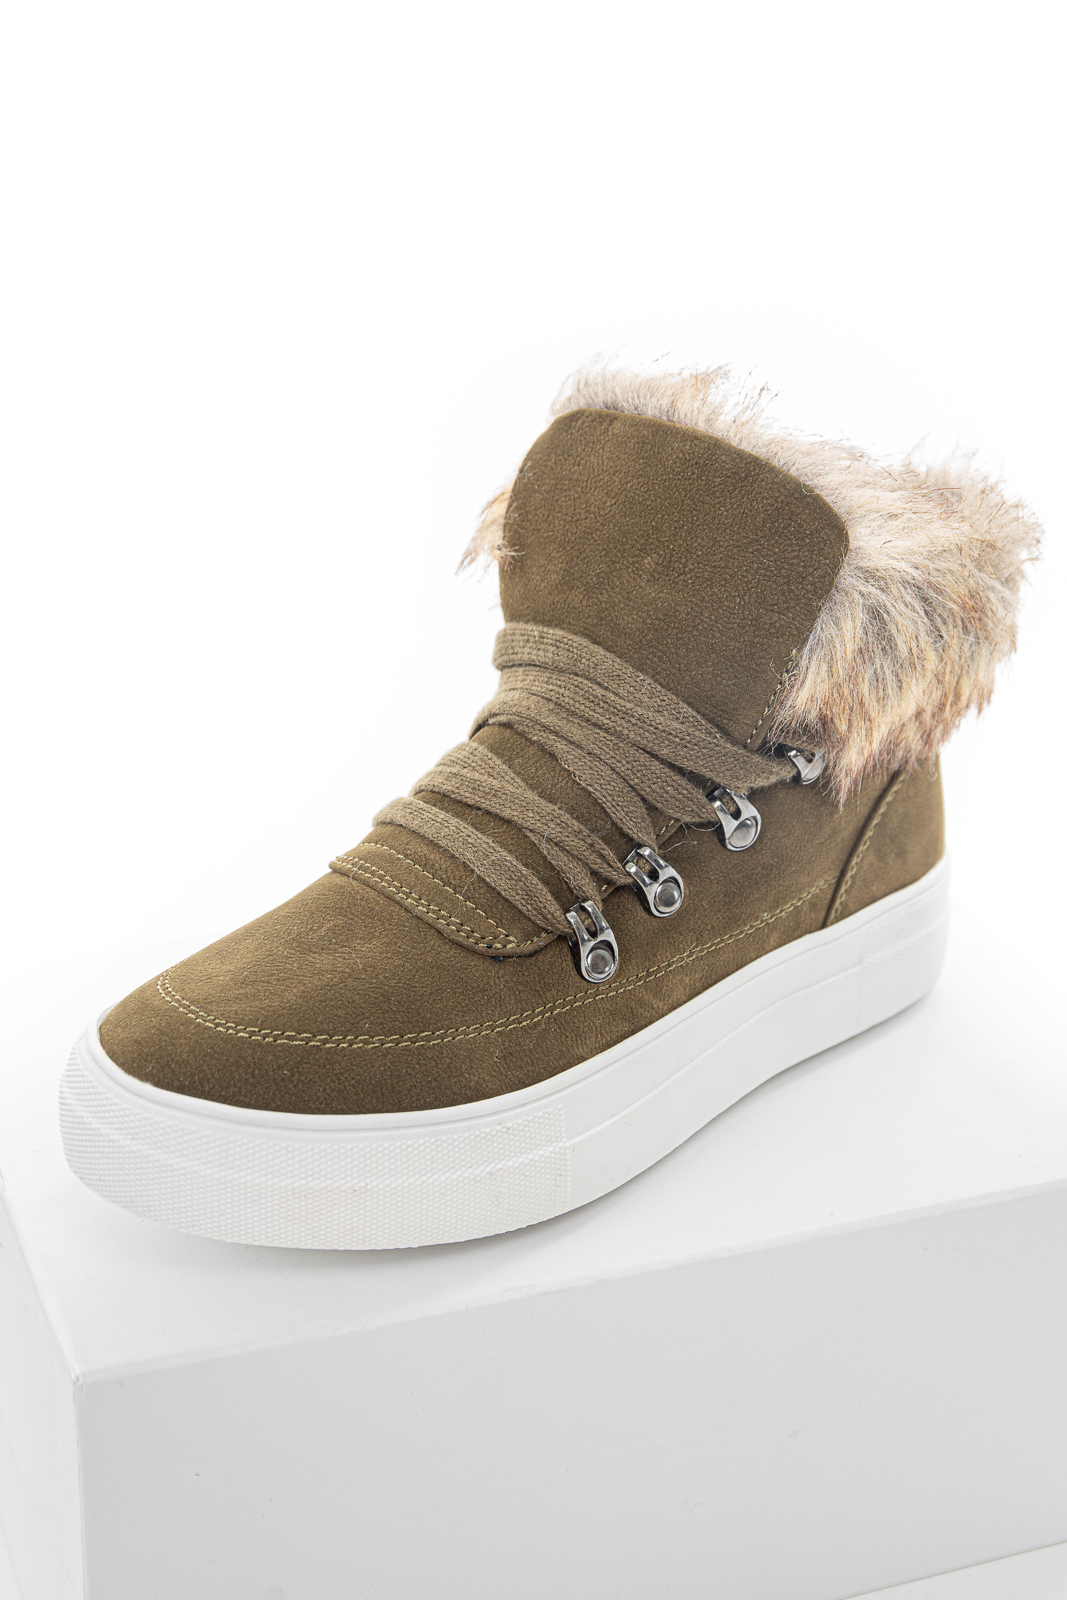 Olive Green Lace Up Sneakers with Faux Fur Trim